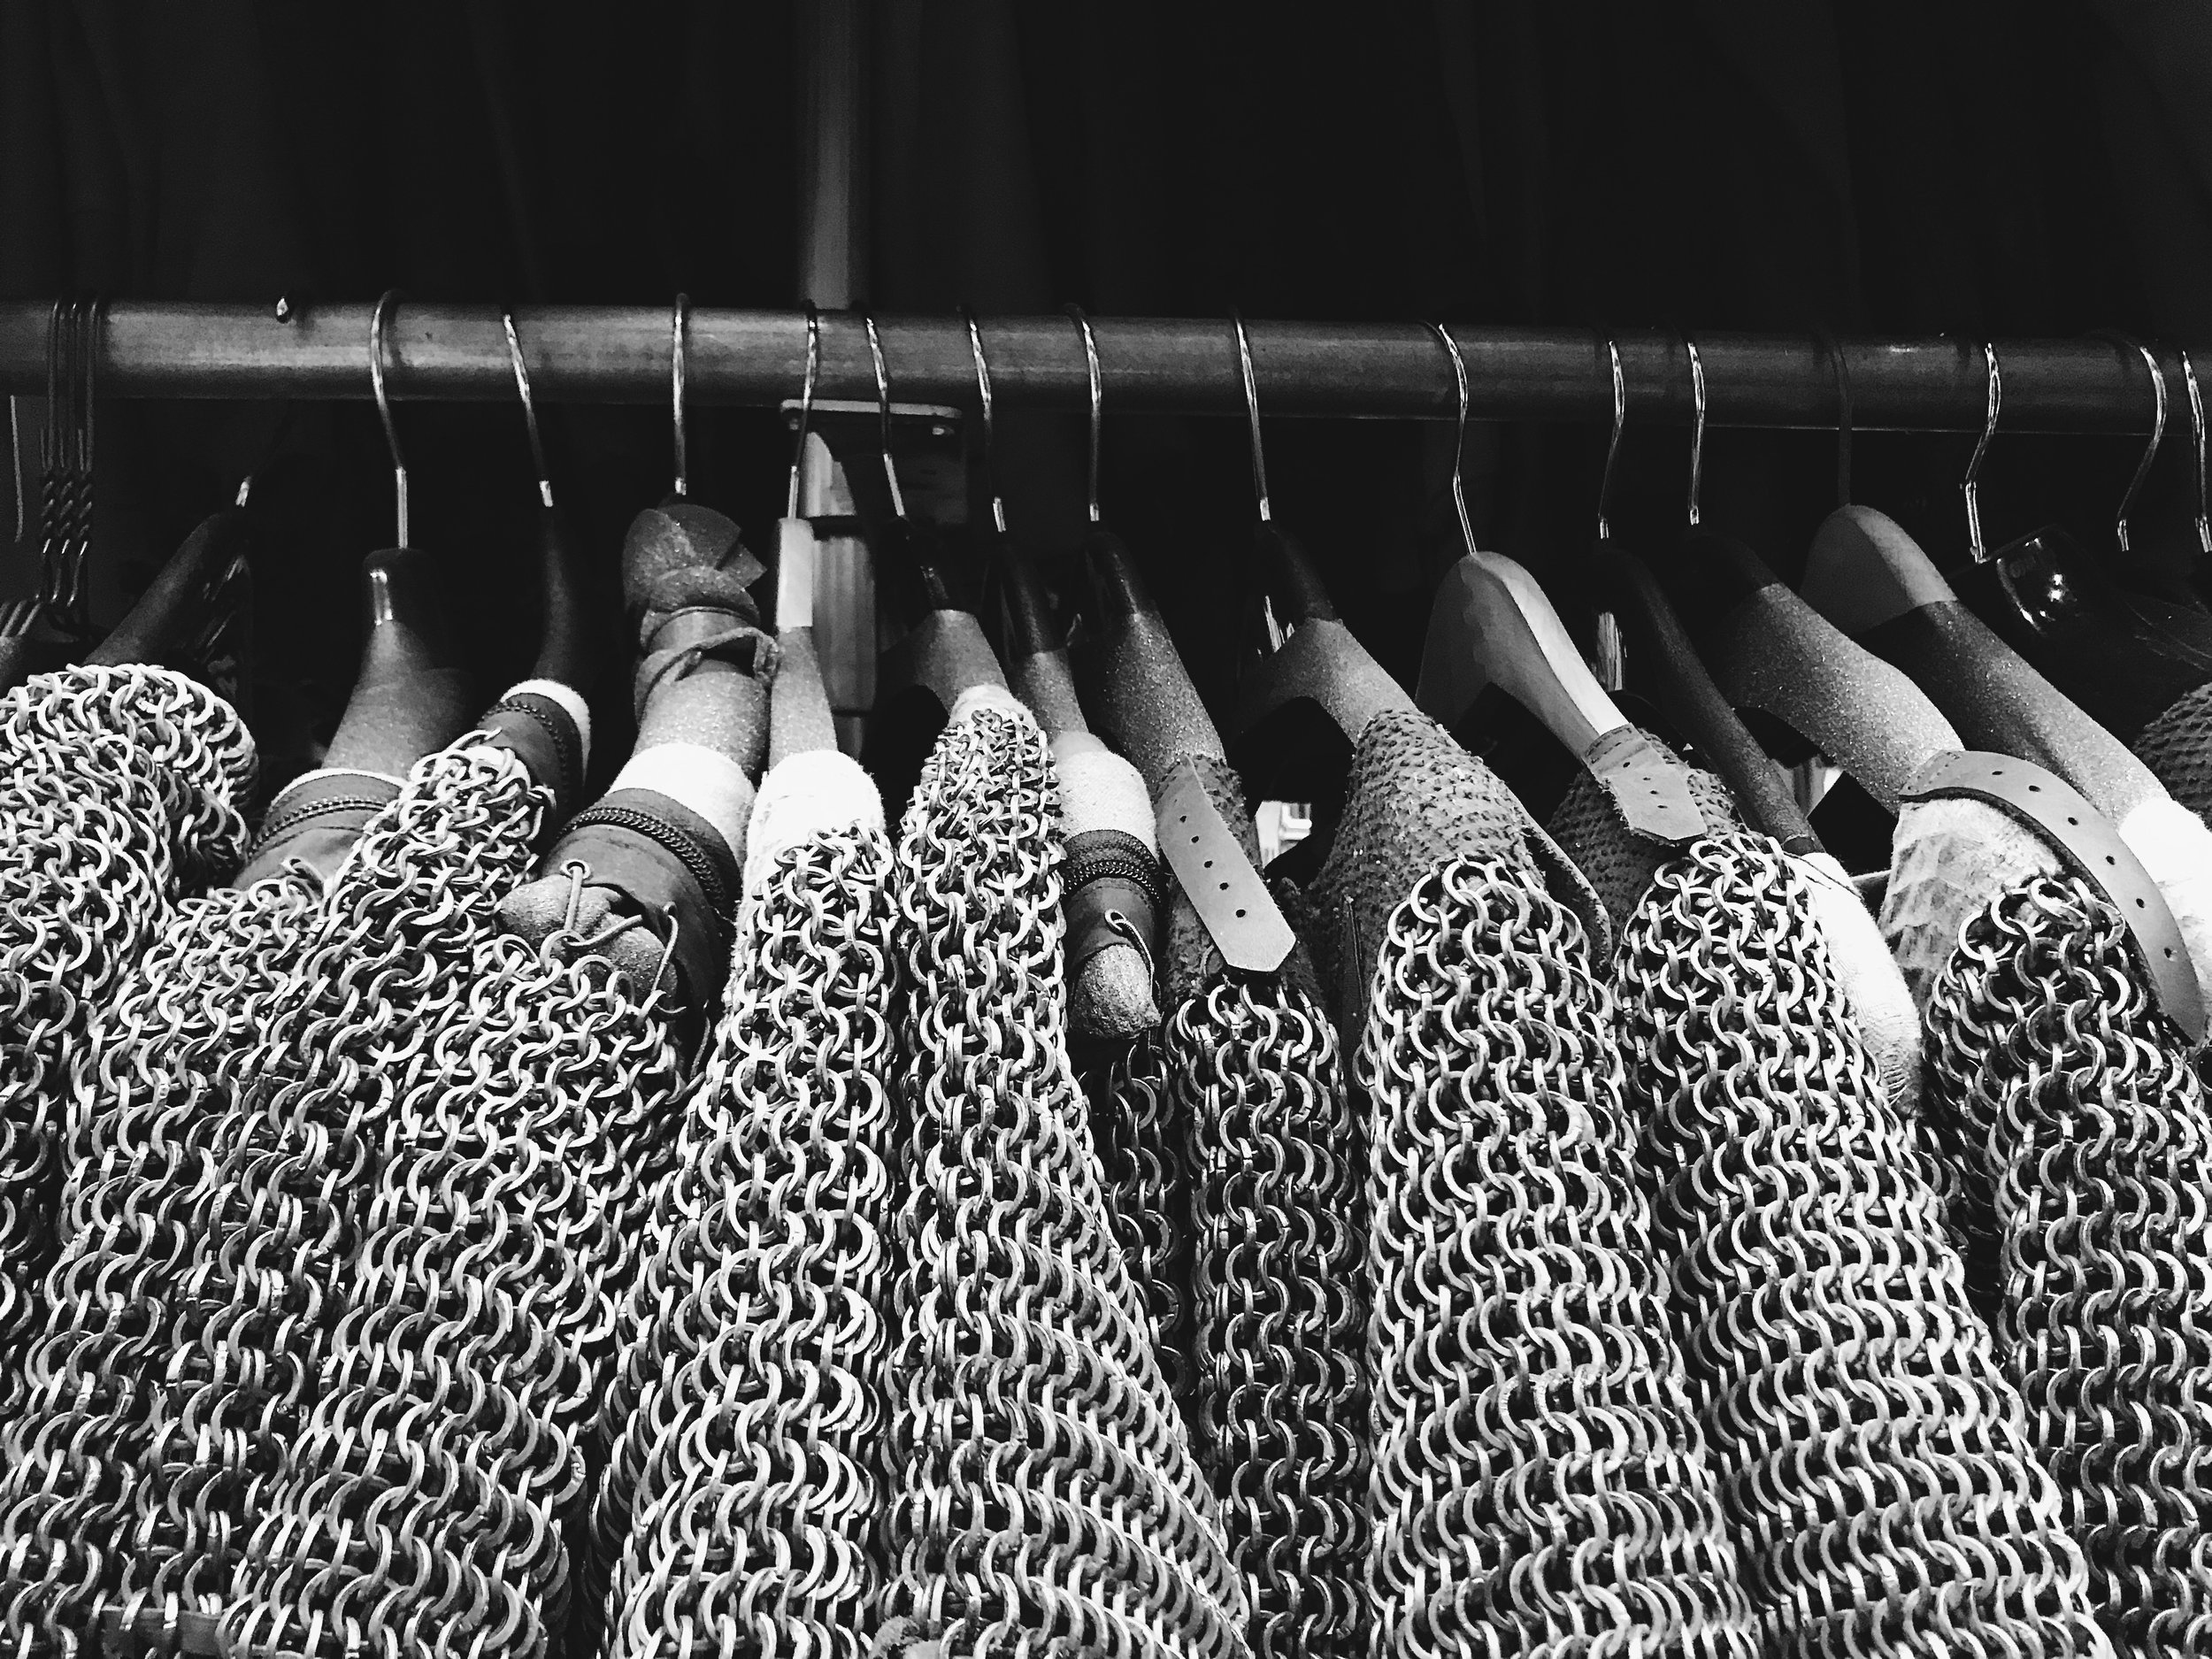 Chain mail costumes on the racks at Western Costume.  Photo via  Finding Lost Angeles  (2018)